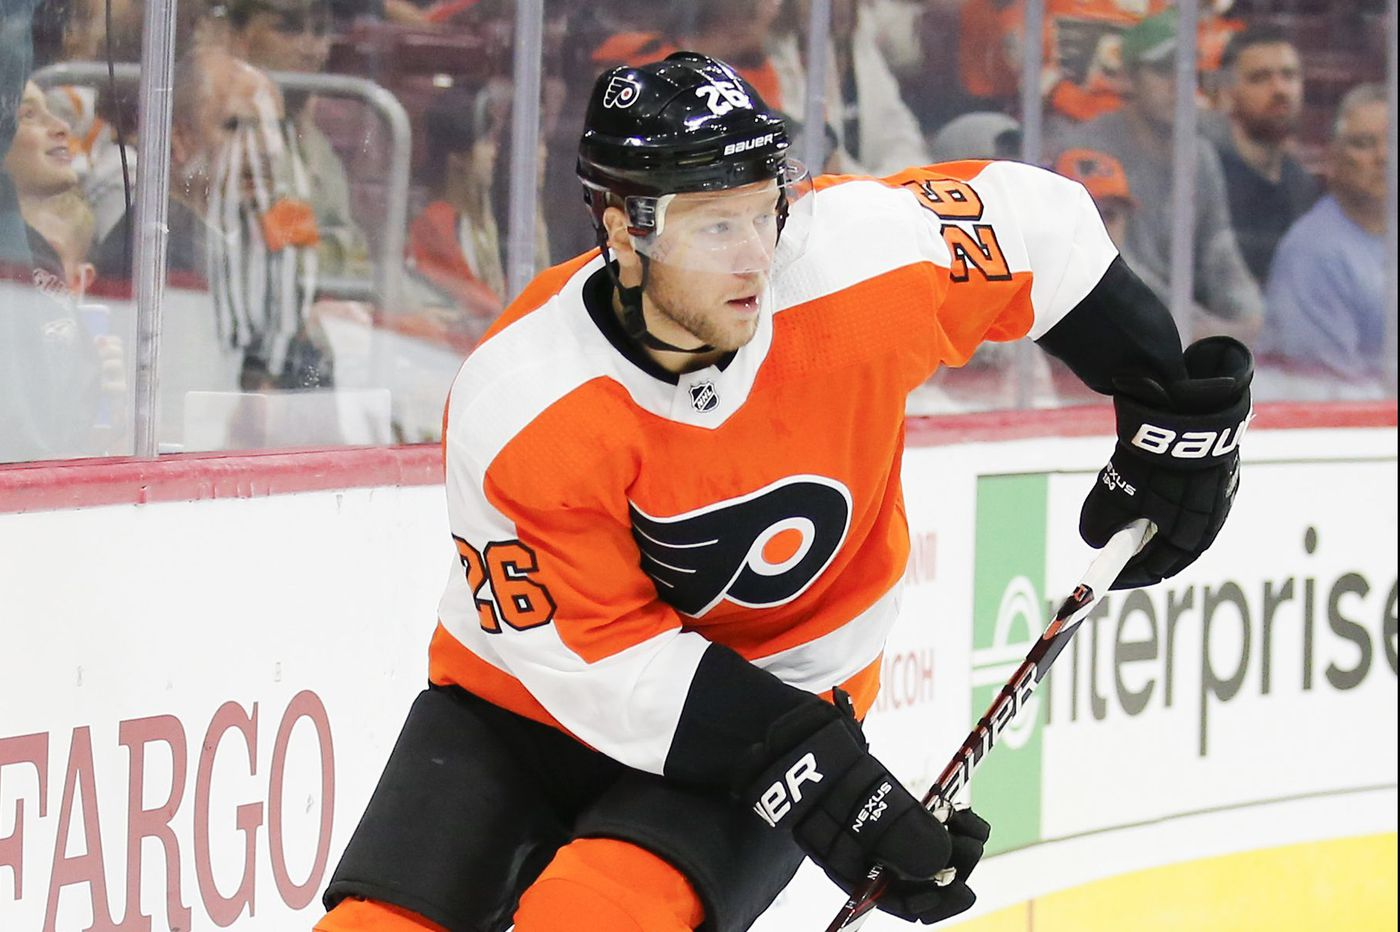 Flyers' Christian Folin provided a spark after replacing injured Shayne Gostisbehere with less than an hour's notice